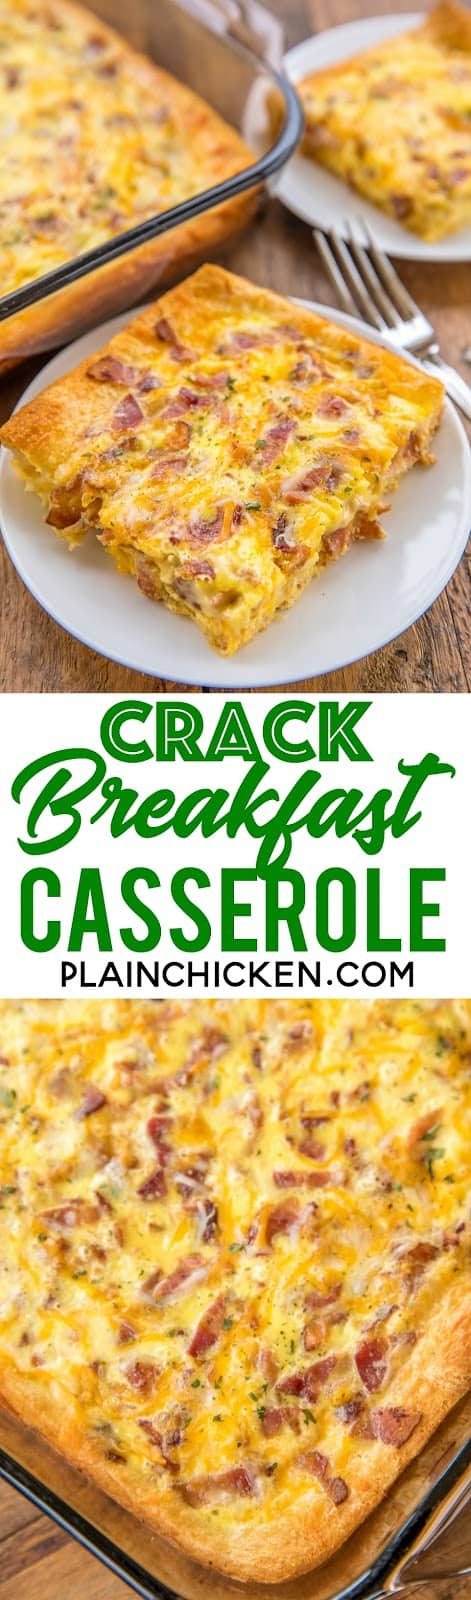 Crack Breakfast Casserole - crazy good! We are totally addicted to this easy breakfast casserole!! Crescent rolls, bacon, cheddar, ranch dressing, eggs and milk. Can make ahead of time and refrigerate overnight. SO good. We made this two days in a row! #breakfast #casserole #bacon #cheddar #breakfastrecipe